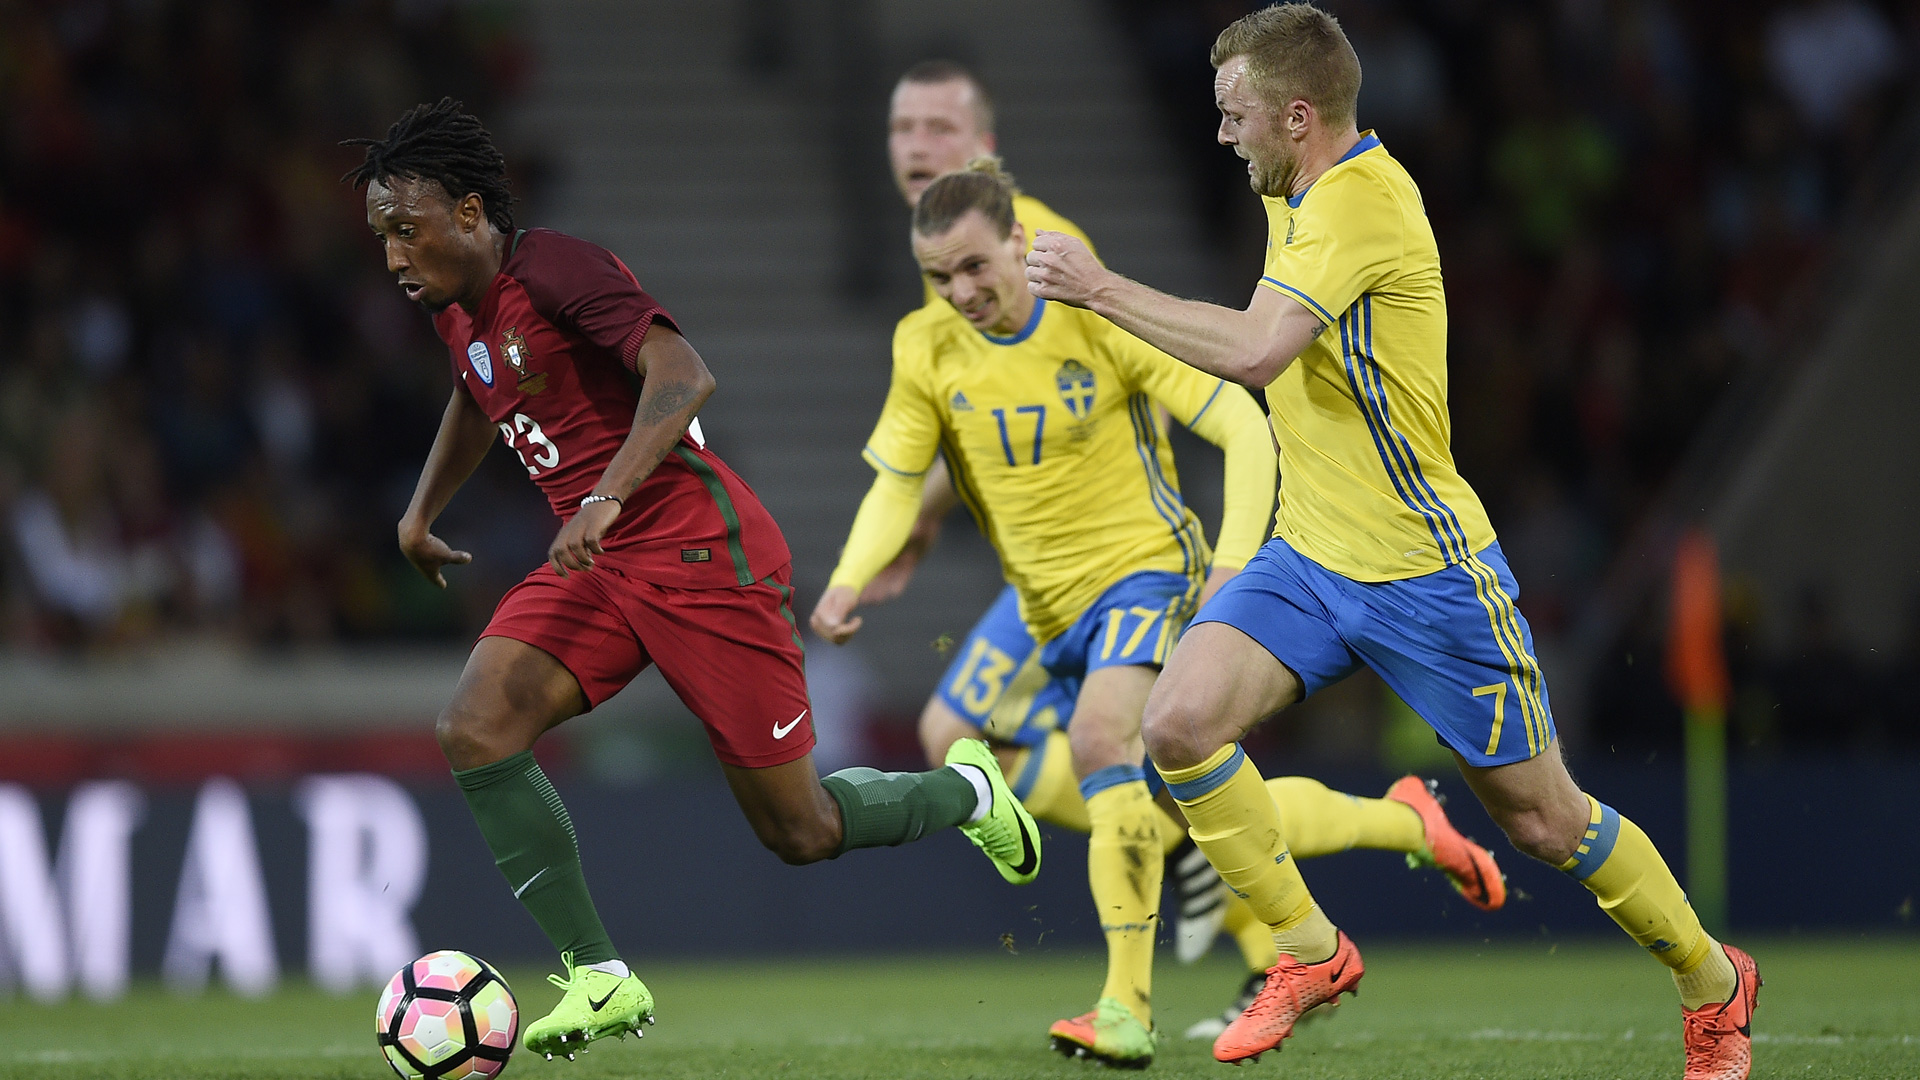 Gelson Martins Portugal WM Qualifikation 2017